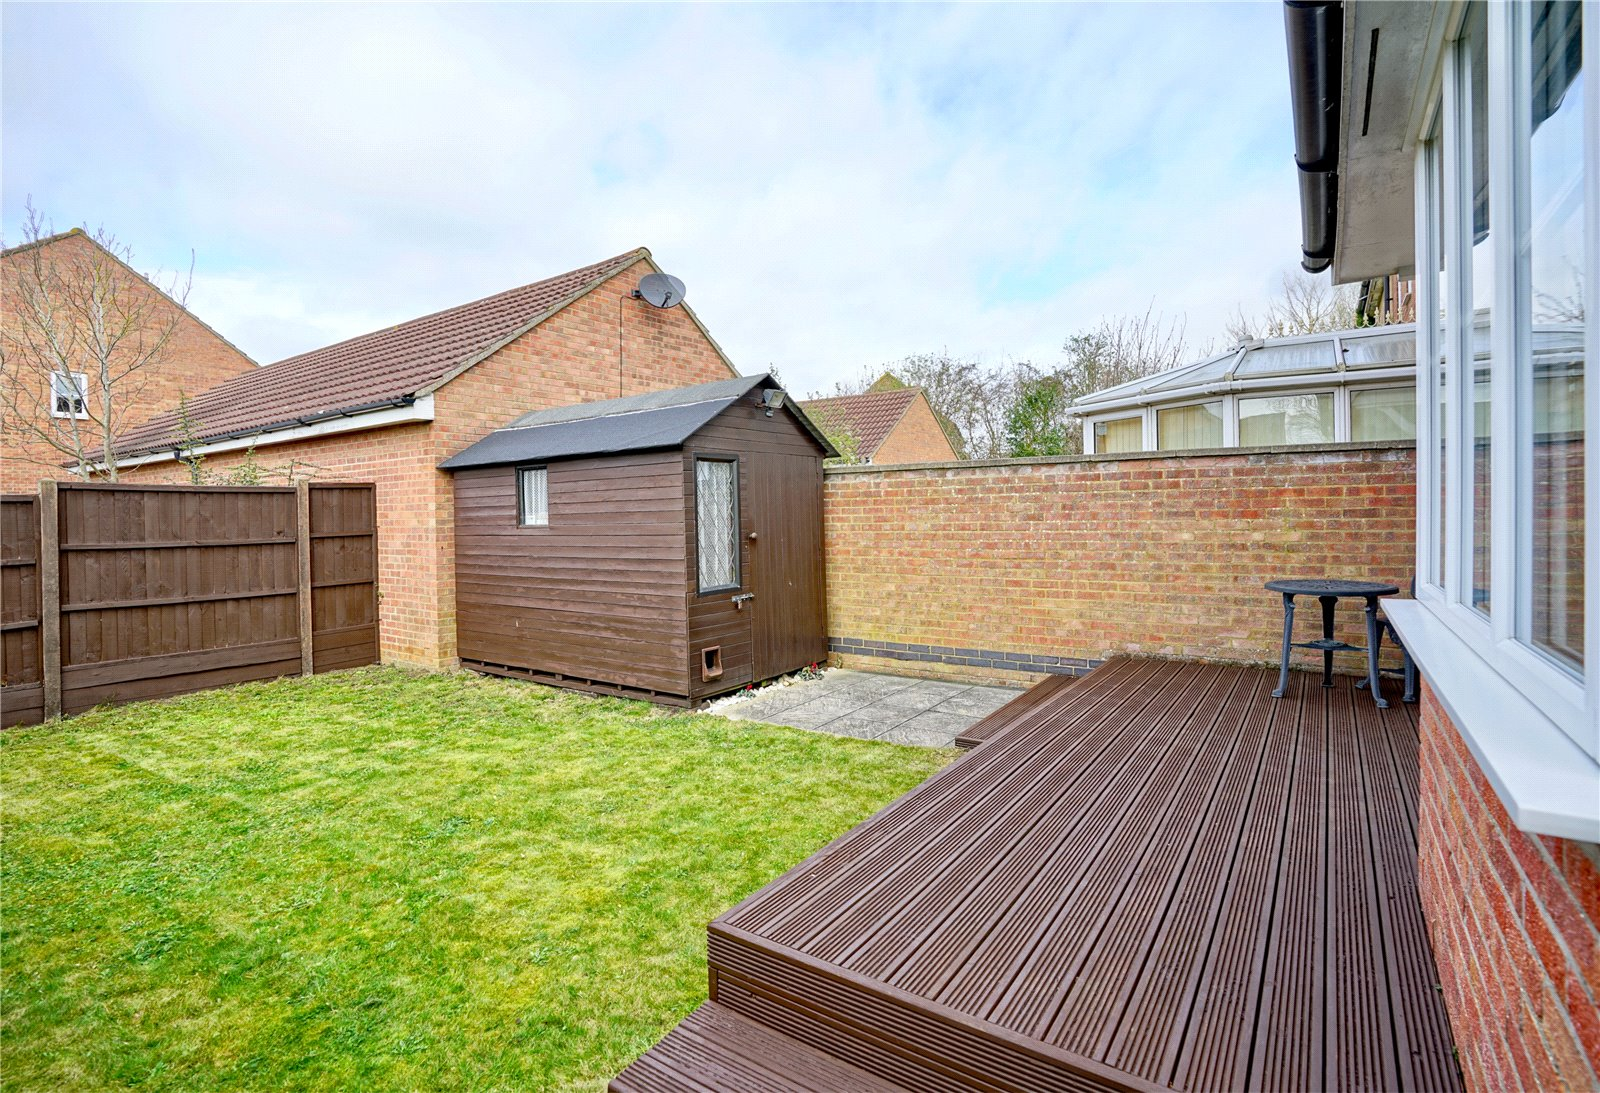 1 bed house for sale in Begwary Close, Eaton Socon  - Property Image 6